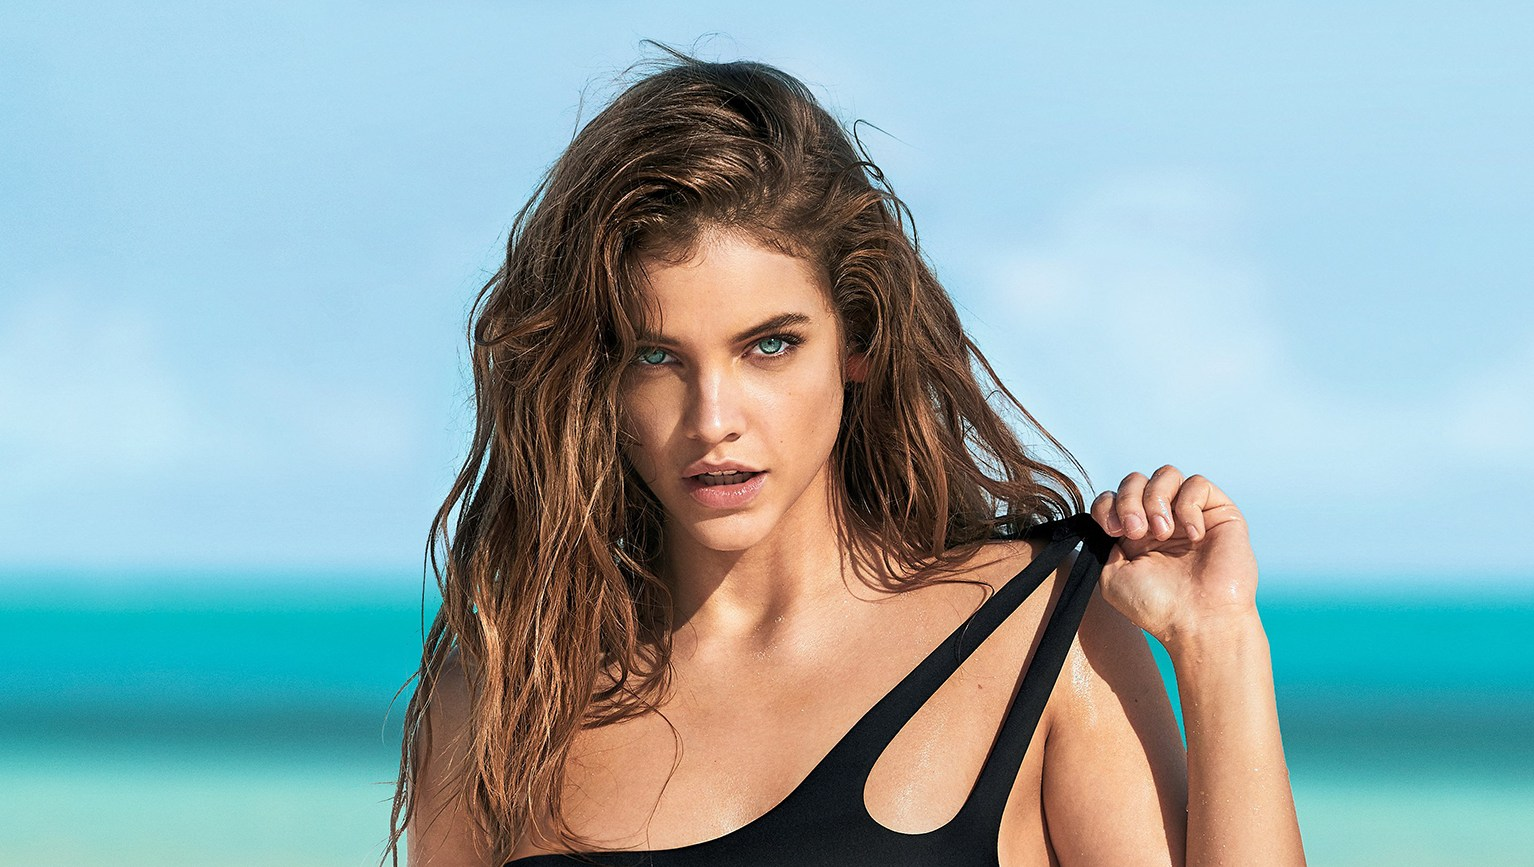 Barbara Palvin Bikini Tips